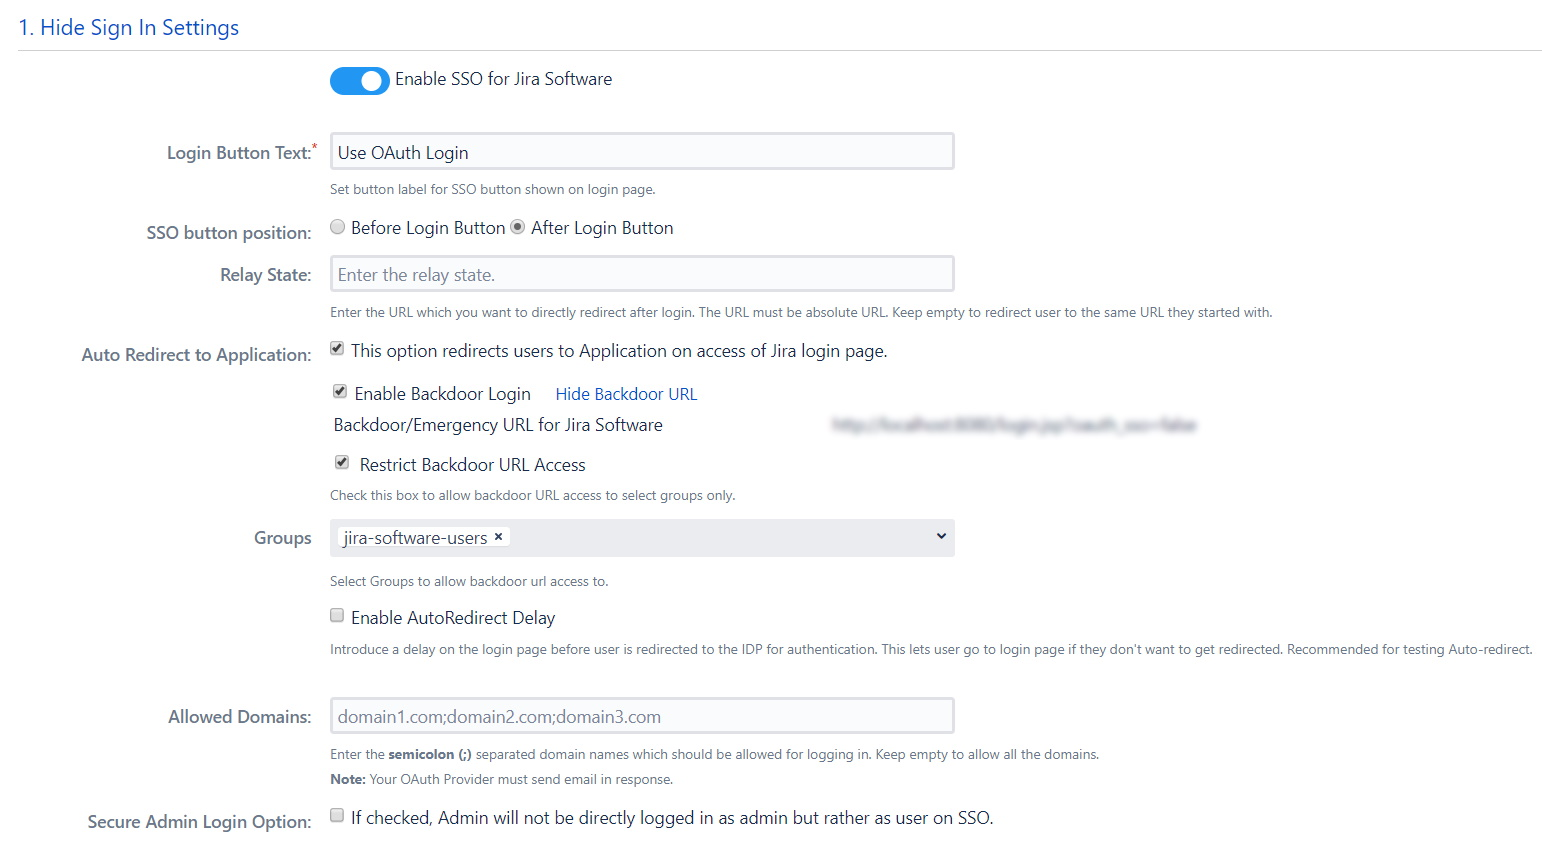 OAuth / OpenID Single Sign On (SSO) into Jira , Sign In Settings